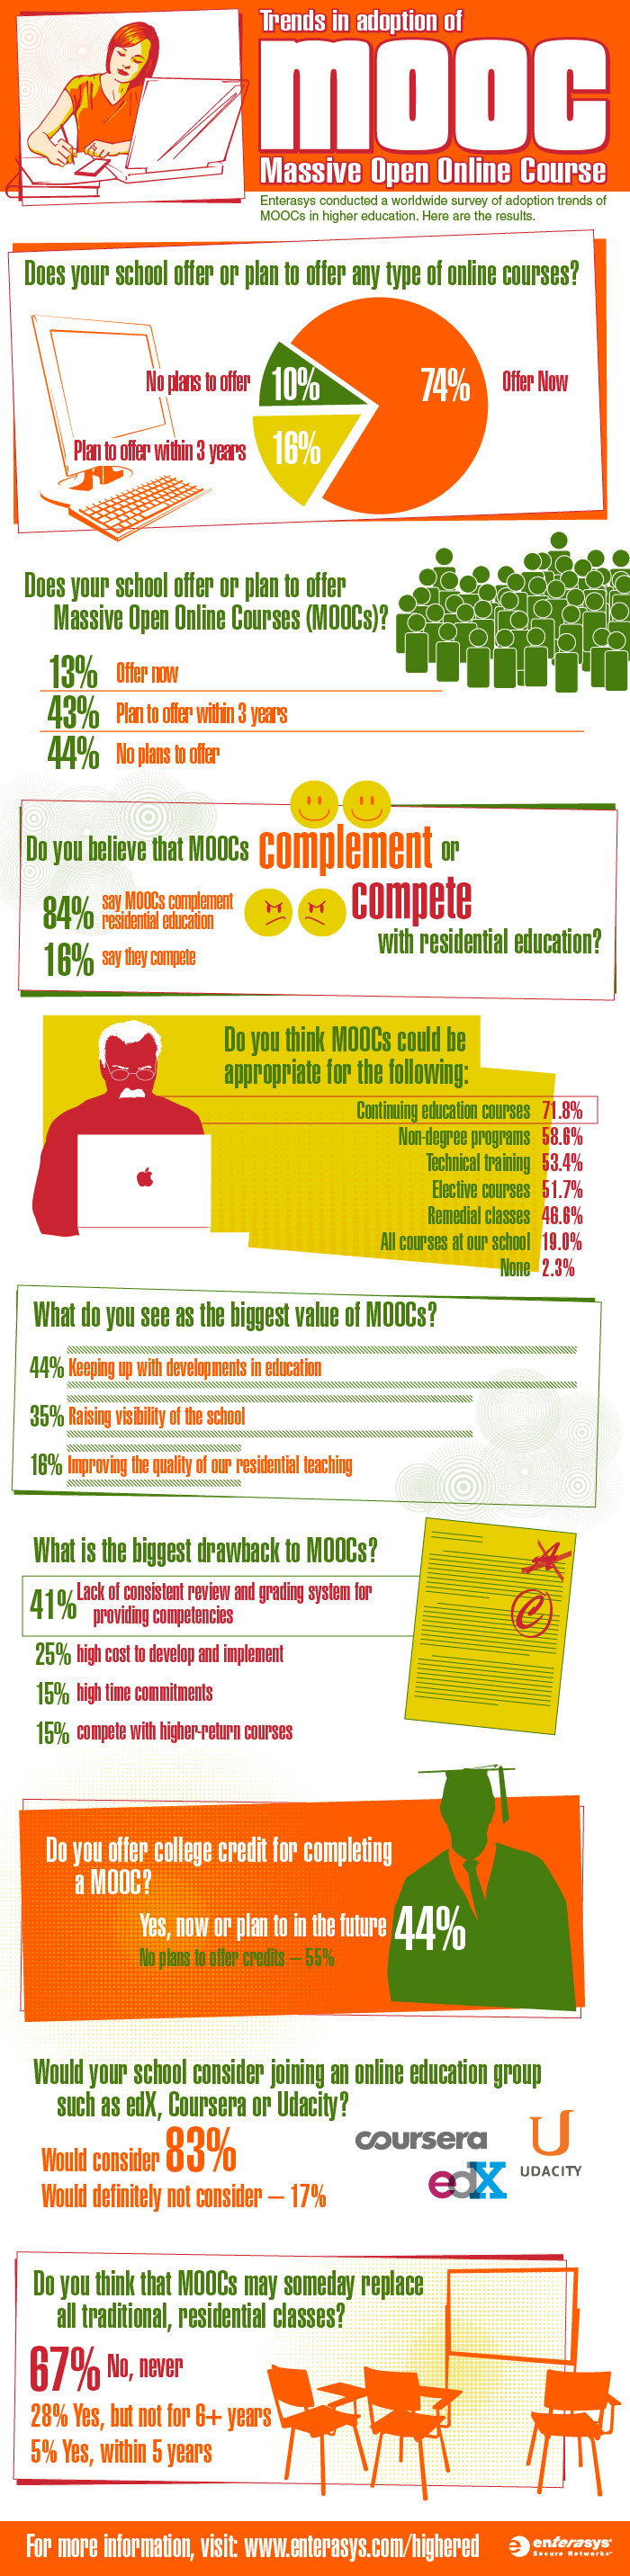 MOOCs Higher Education Infographic